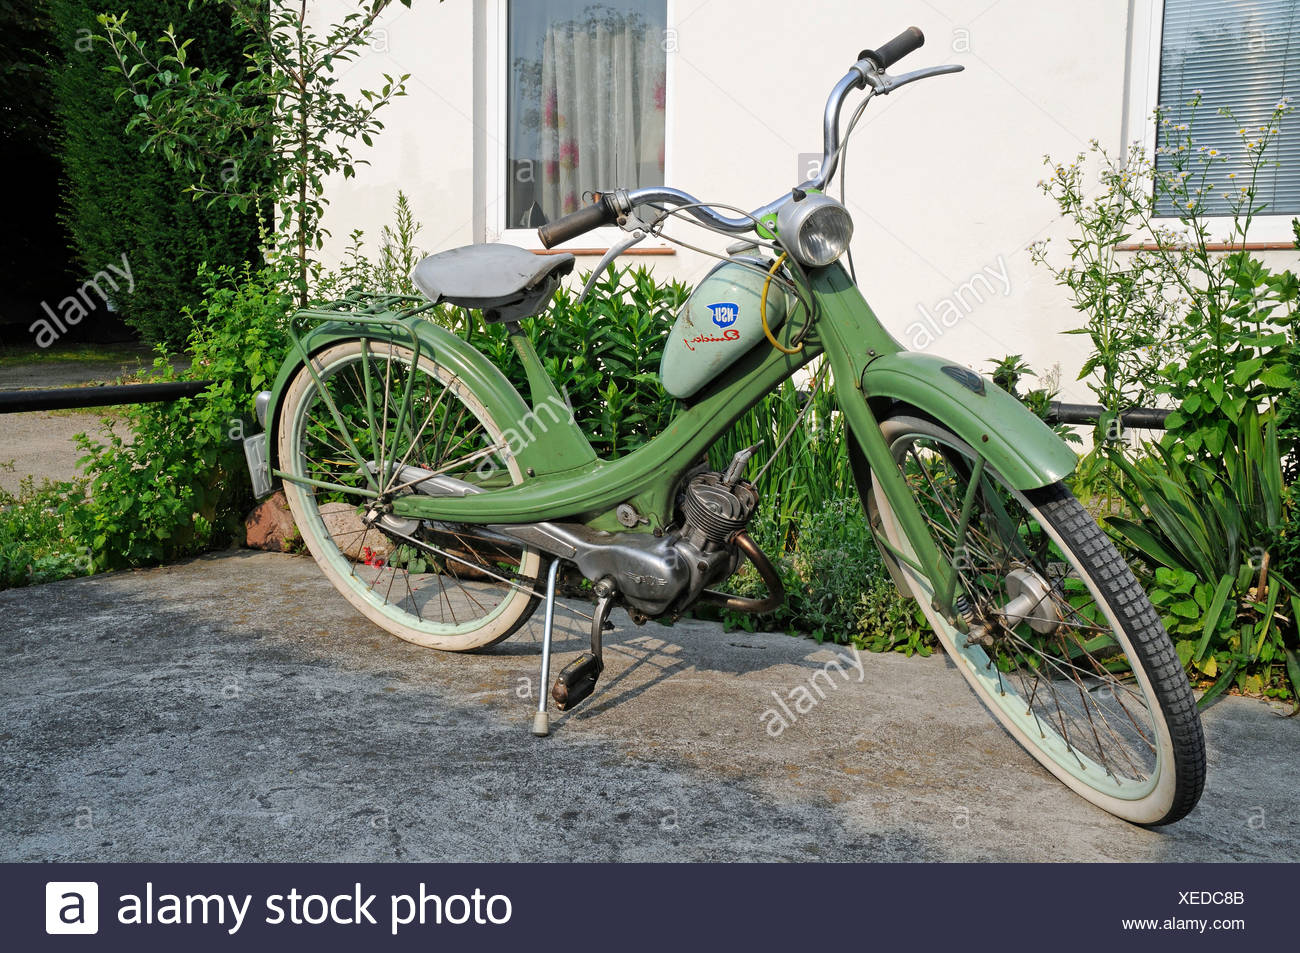 NSU Quickly moped, historic motor-assisted pedal cycle, autocycle, from the post-war era, Wirtschaftswunder era in Germany - Stock Image